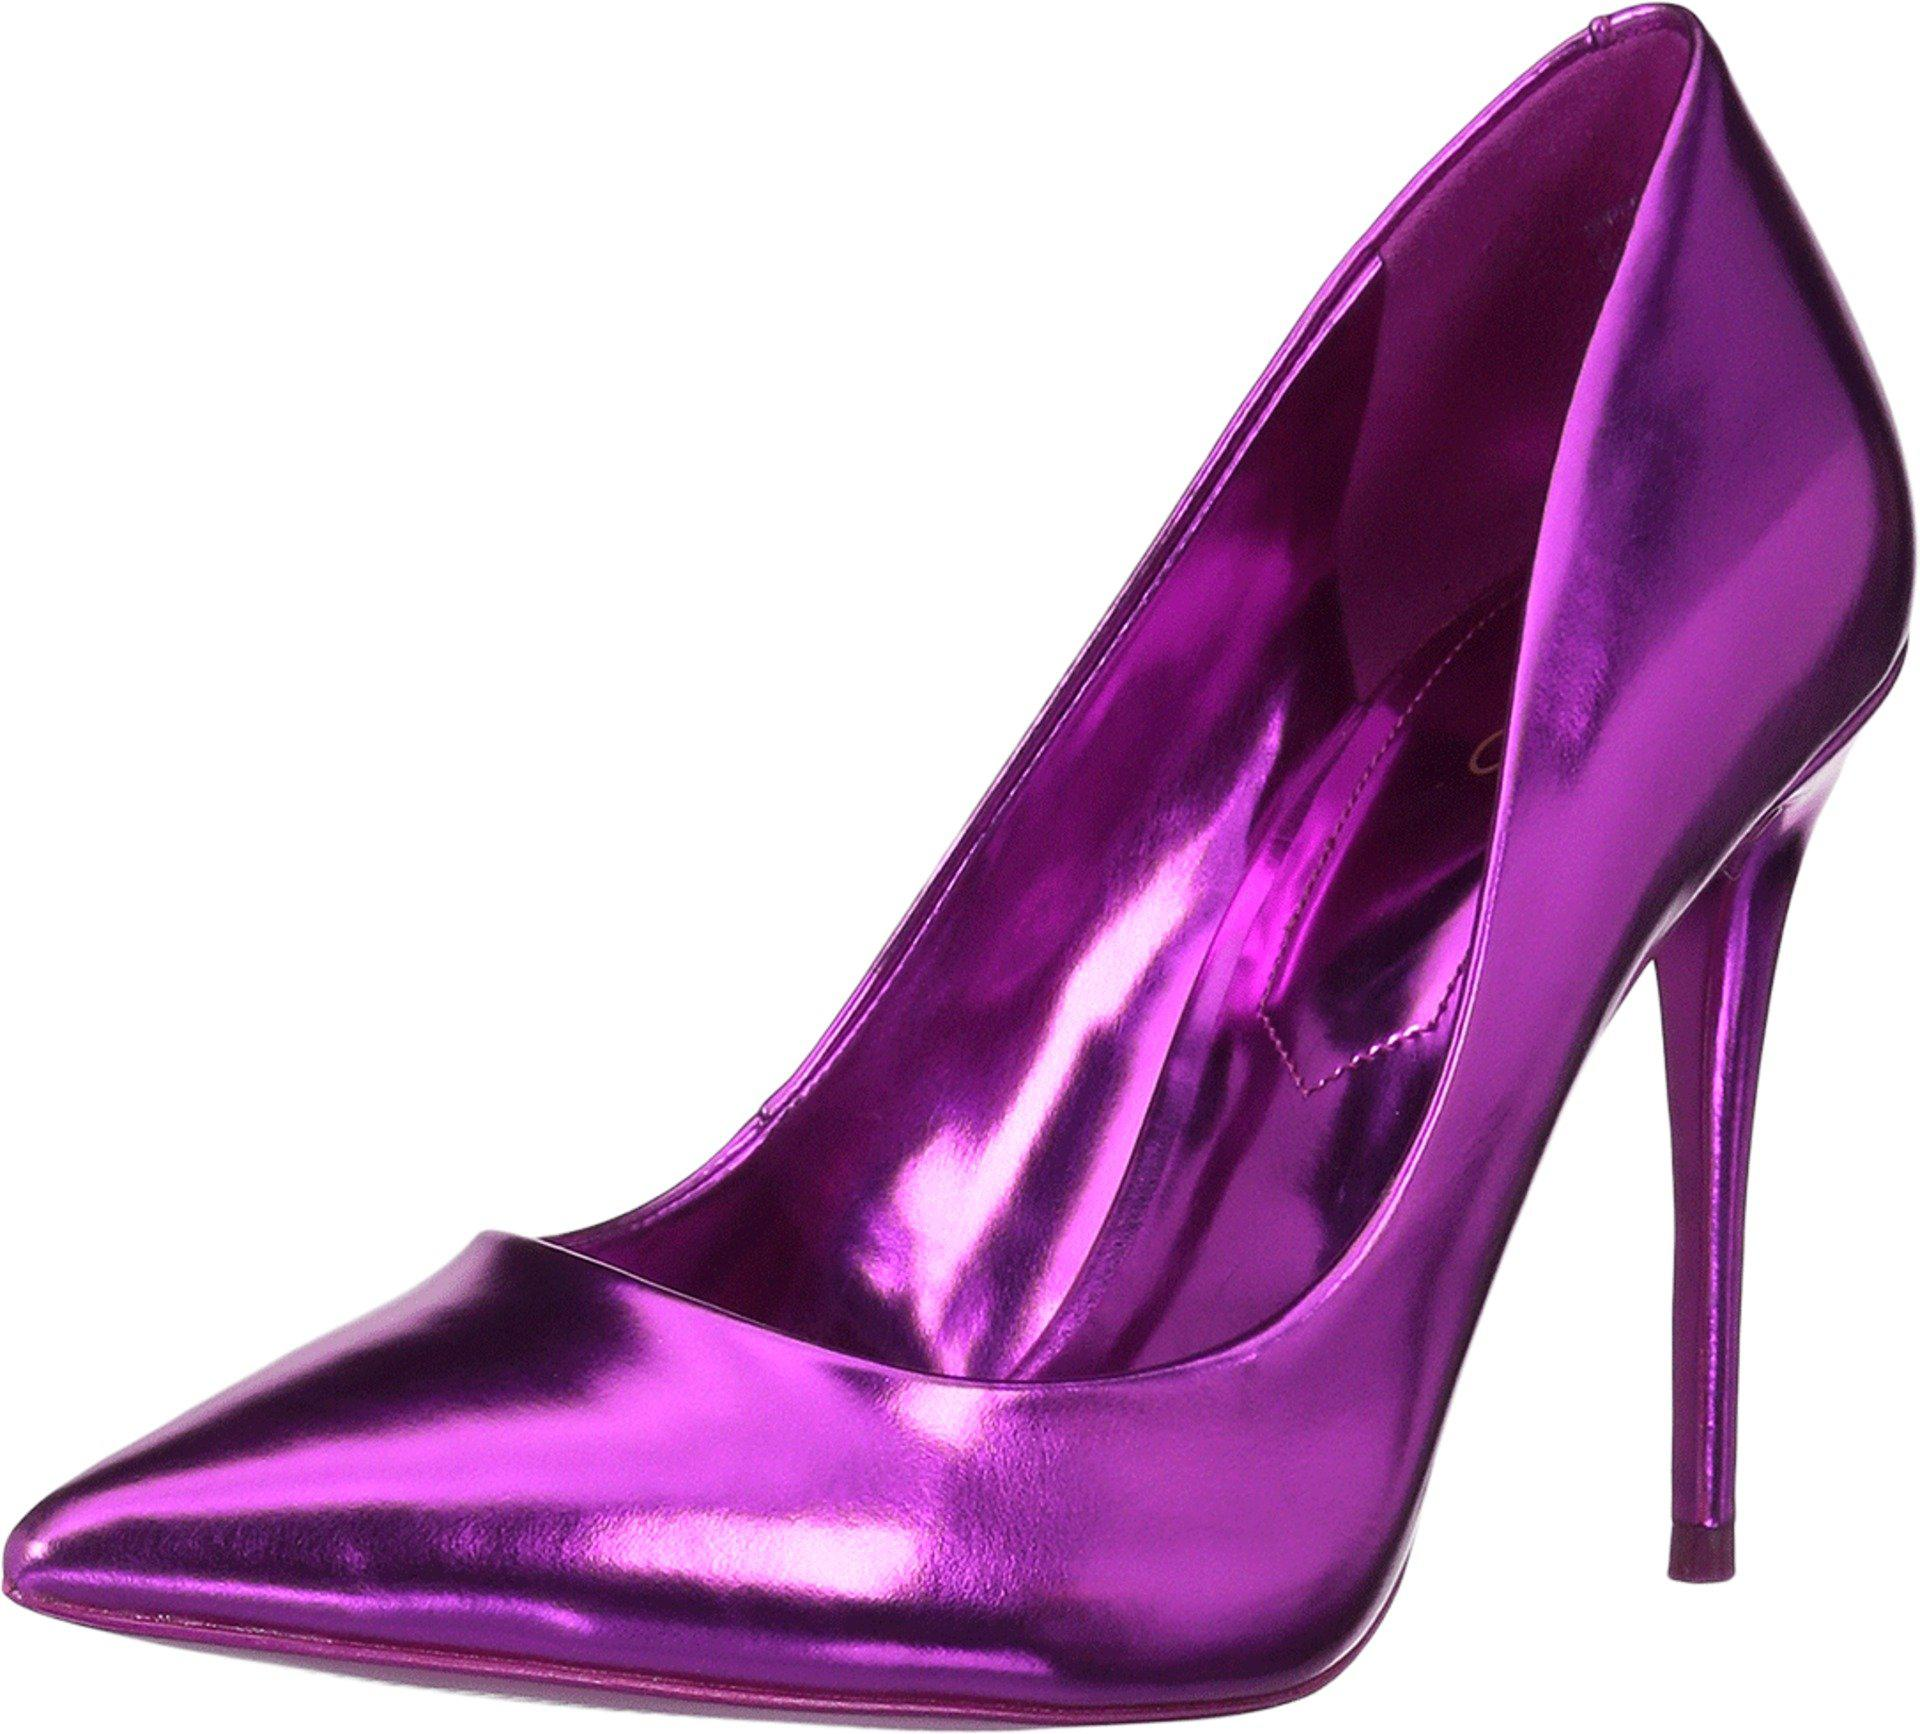 2186deb9d8a8 Lyst - ALDO Stessy Pump in Purple